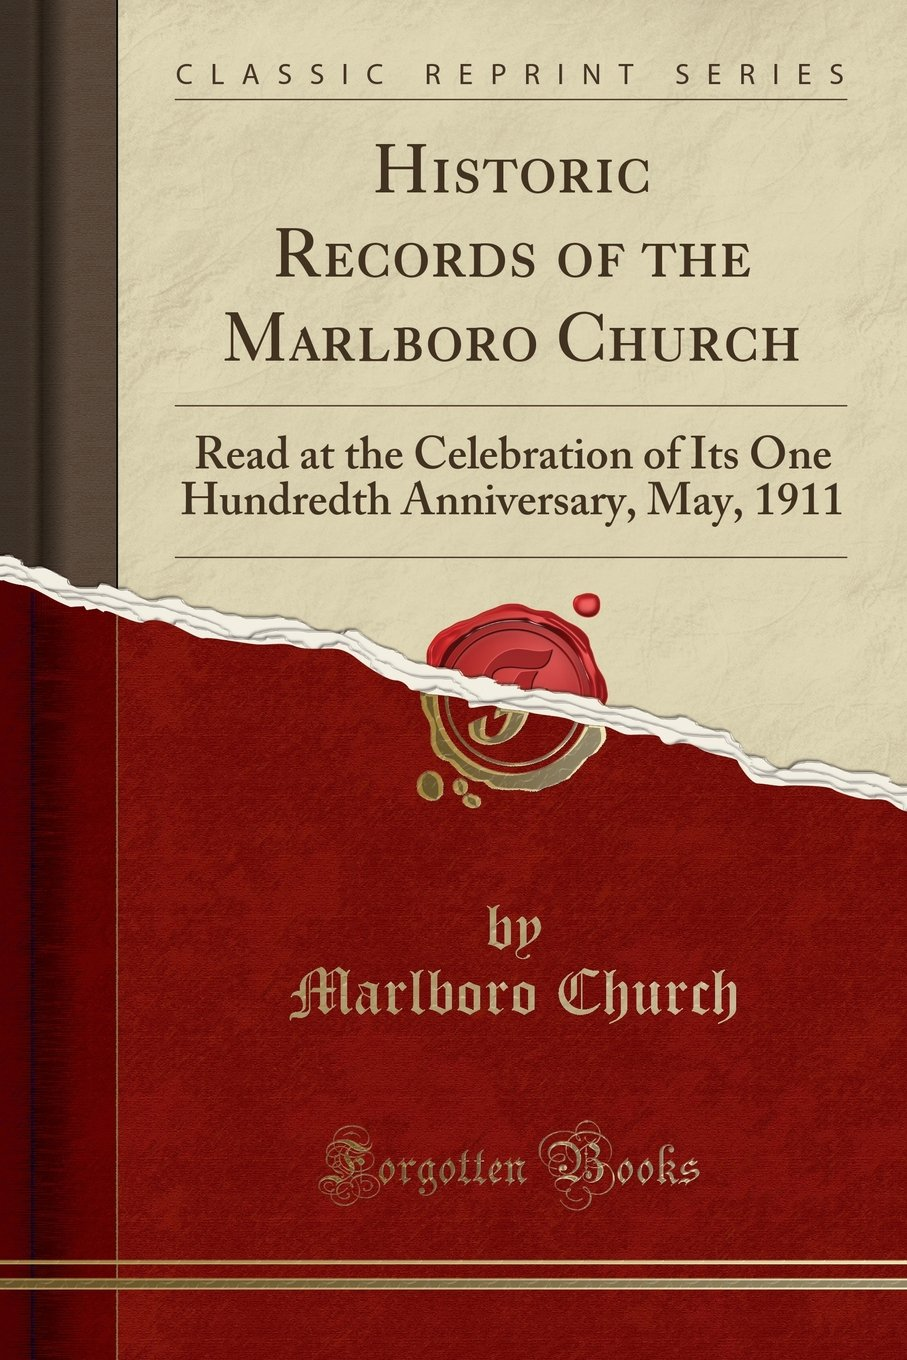 Historic Records of the Marlboro Church: Read at the Celebration of Its One Hundredth Anniversary, May, 1911 (Classic Reprint) ebook